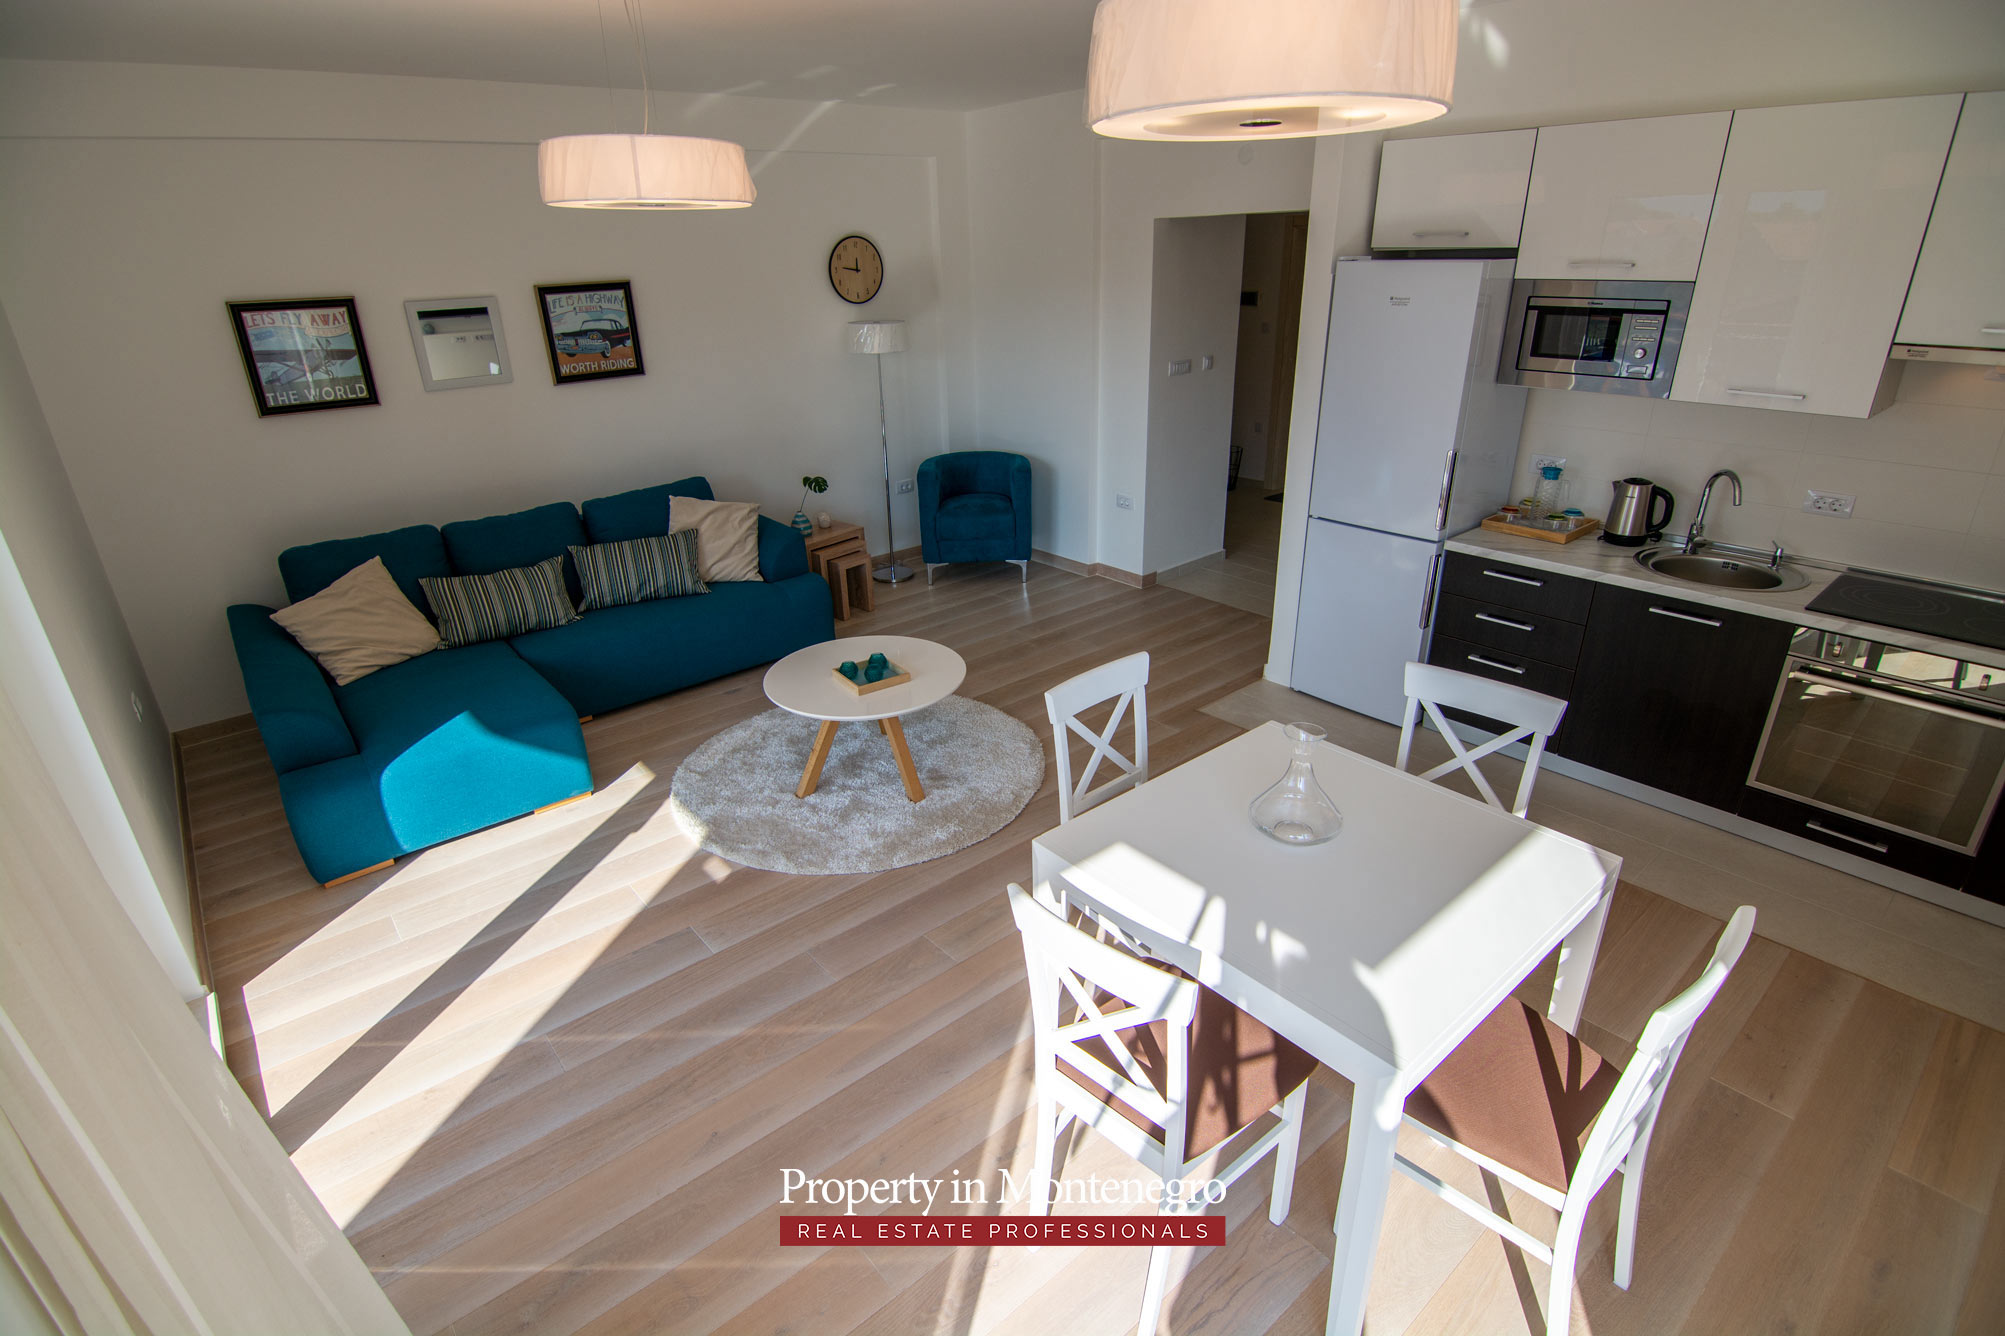 One bedroom for sale in Tivat